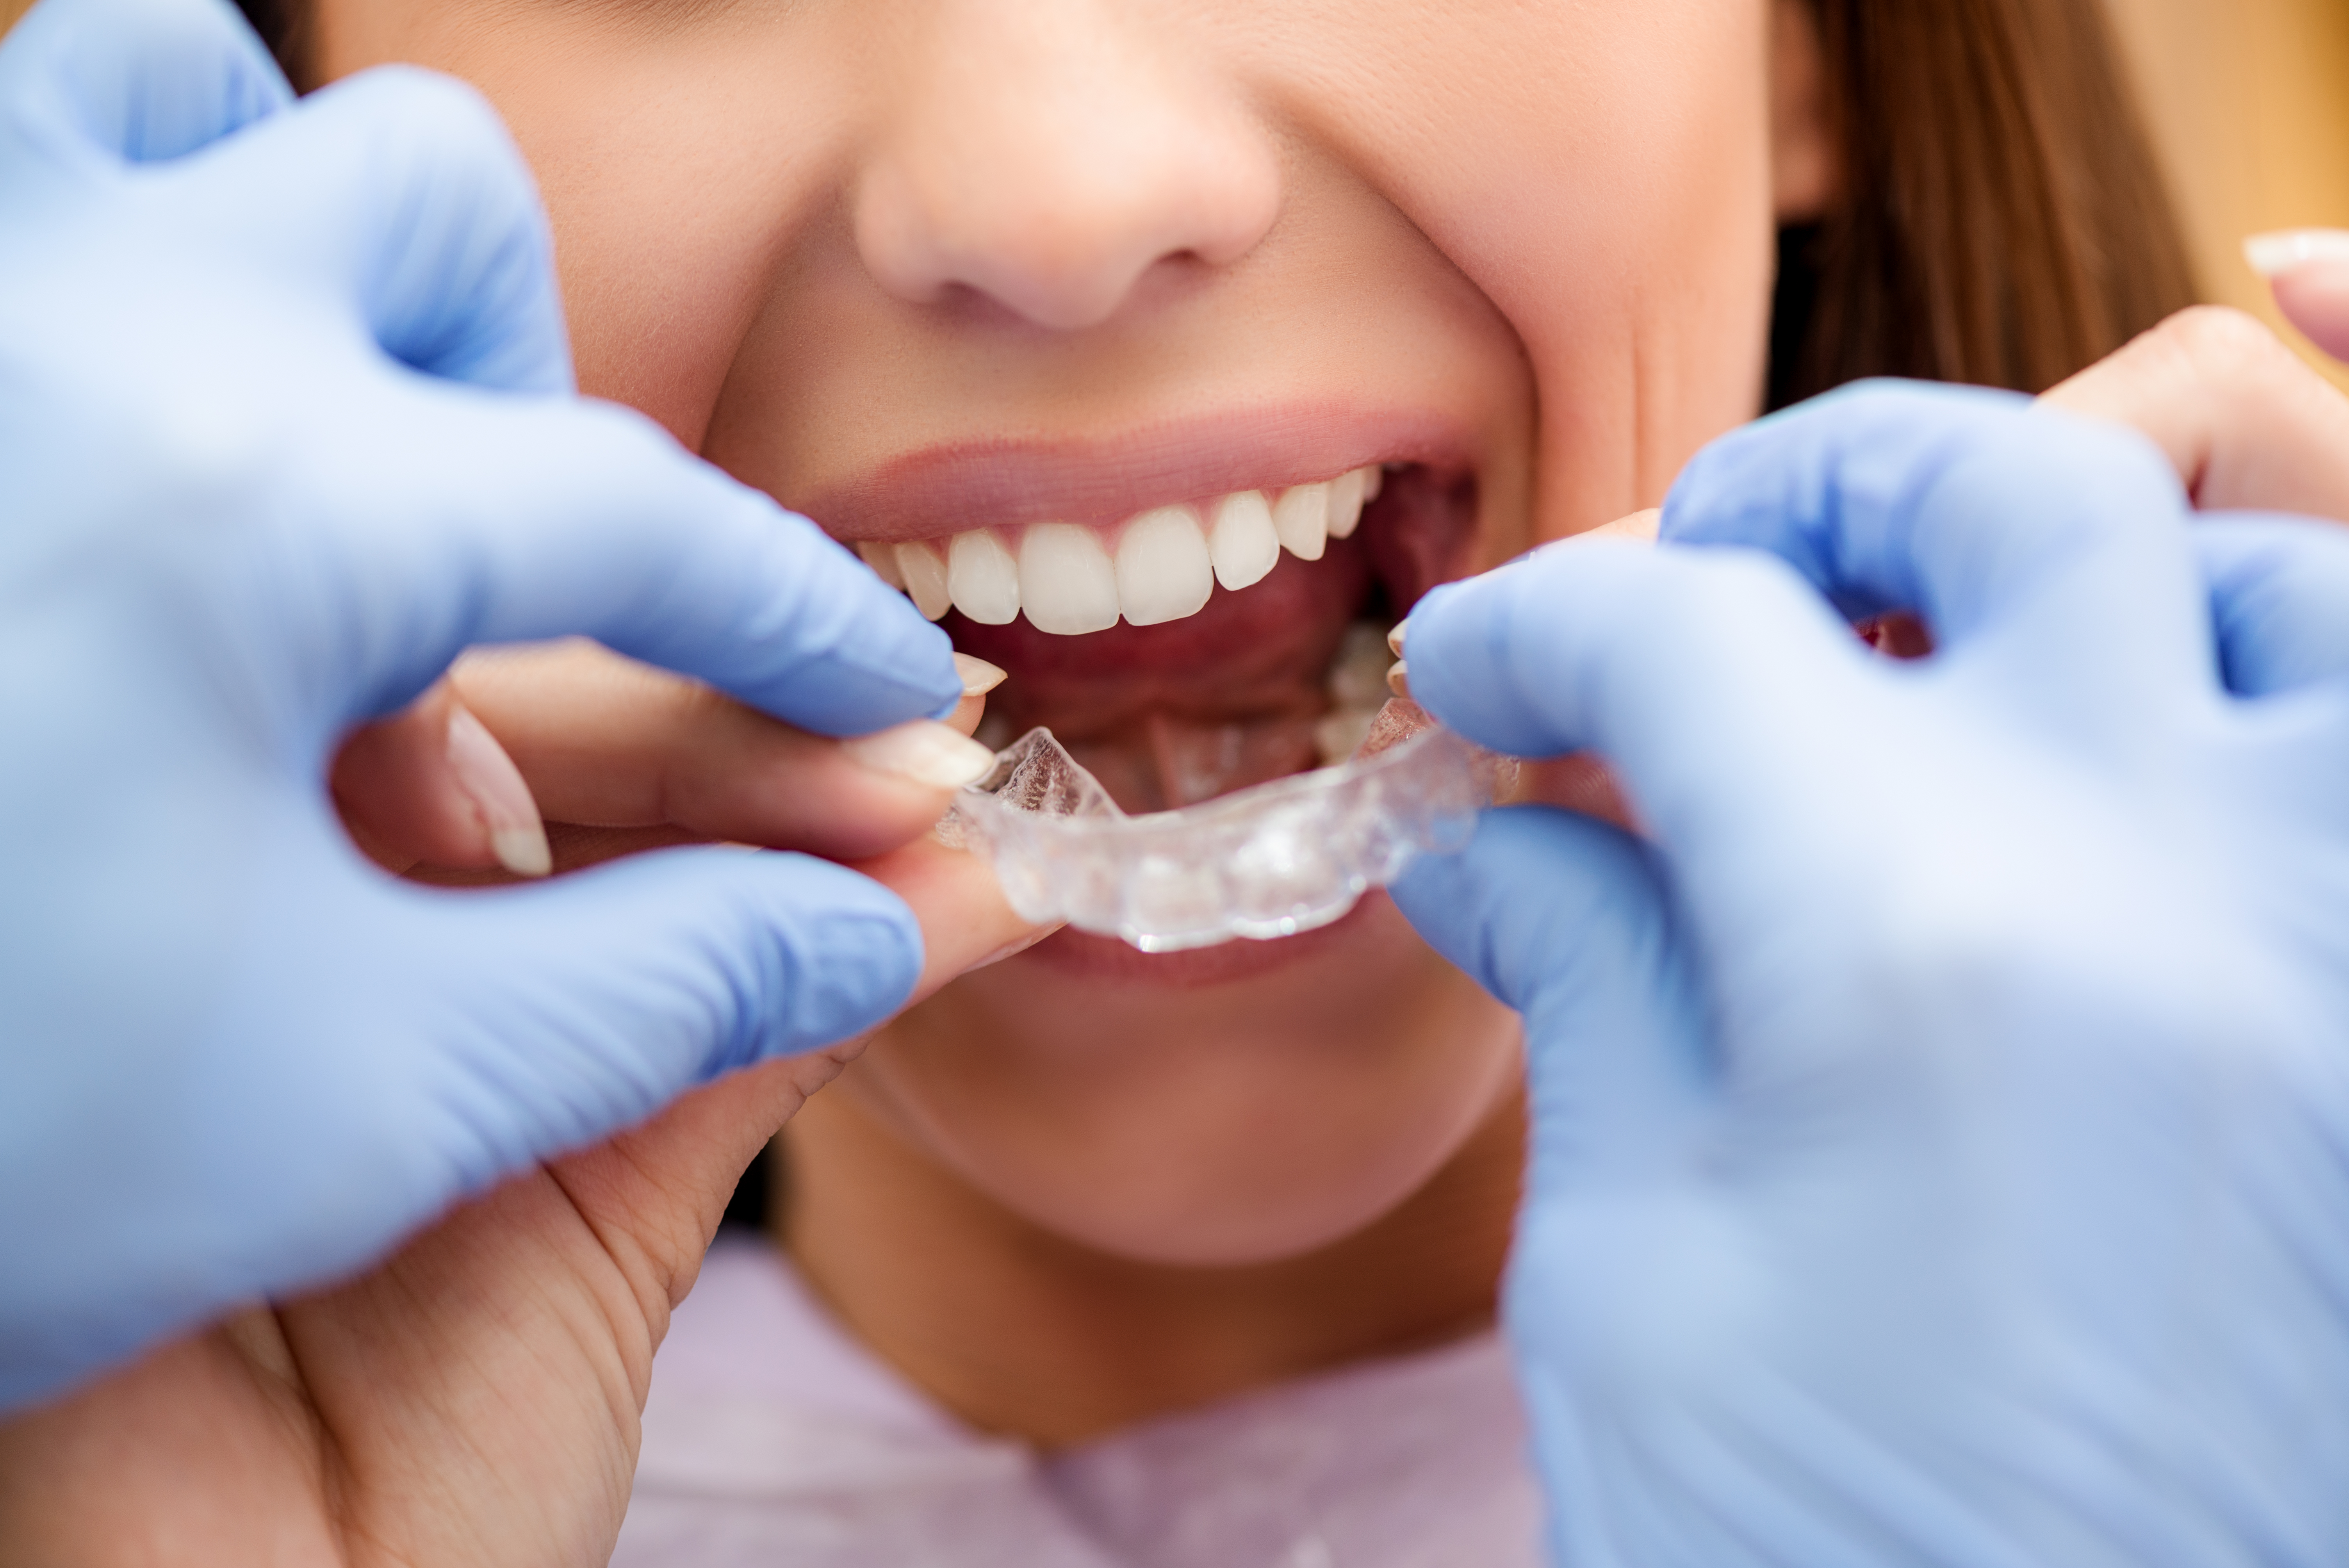 orthodontie invisible, gouttiere-orthodontie-chirurgien-dentiste-centre-soin-dentaire-marseille-13009